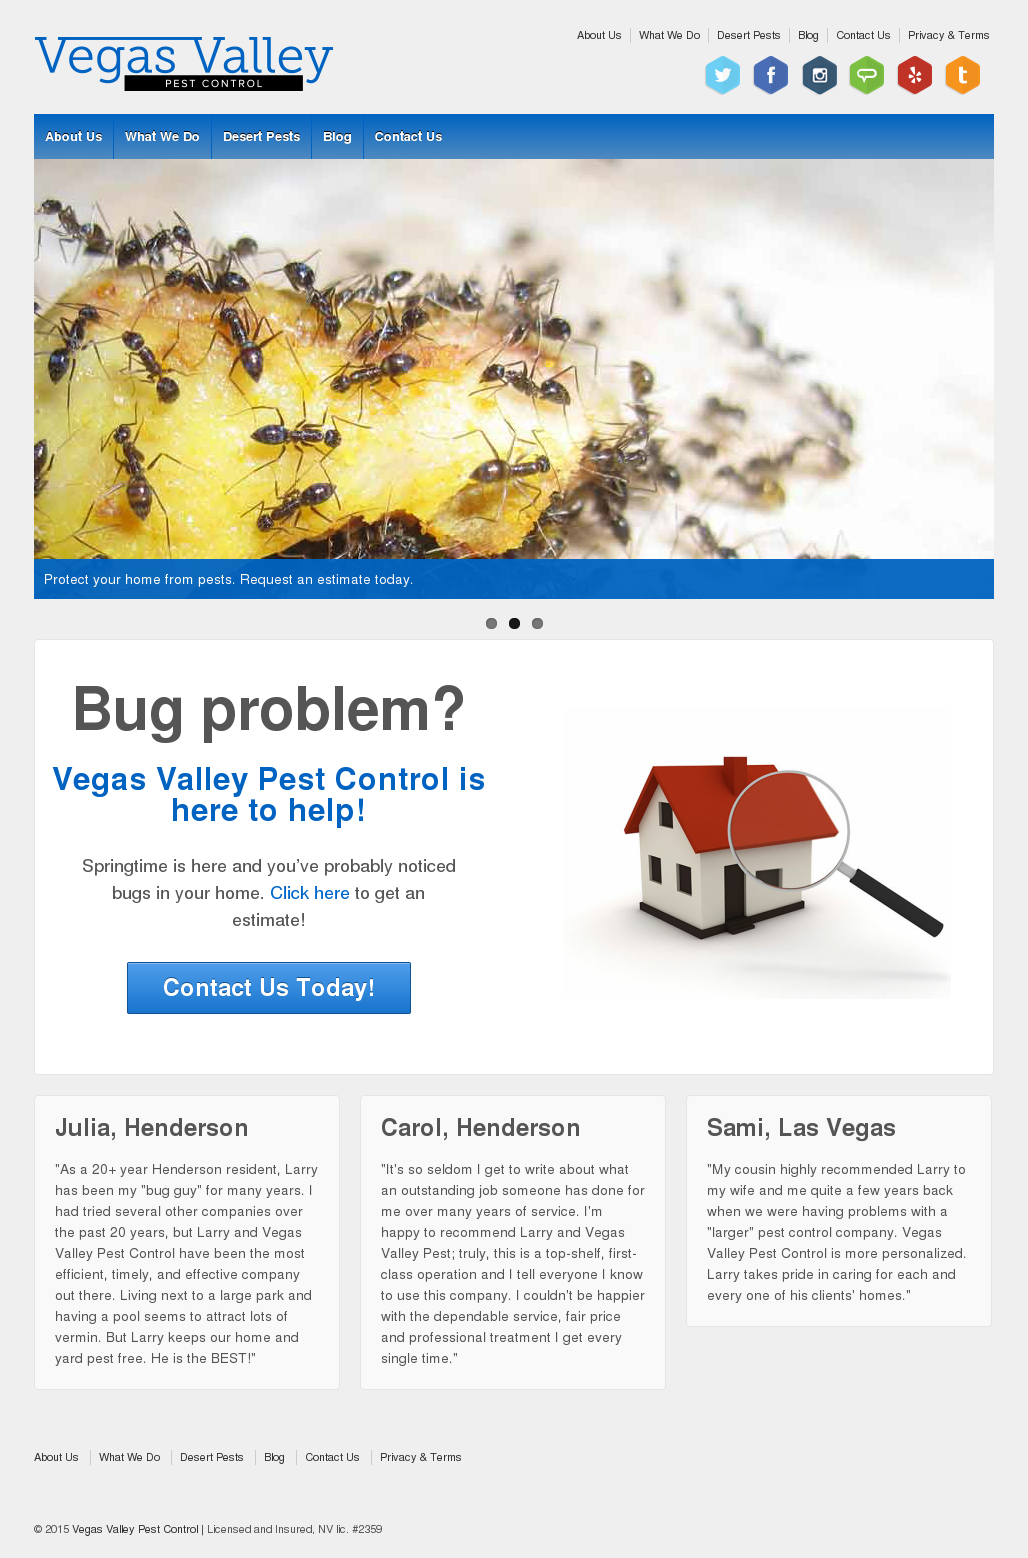 Vegas Valley Pest Control Competitors, Revenue and Employees - Owler